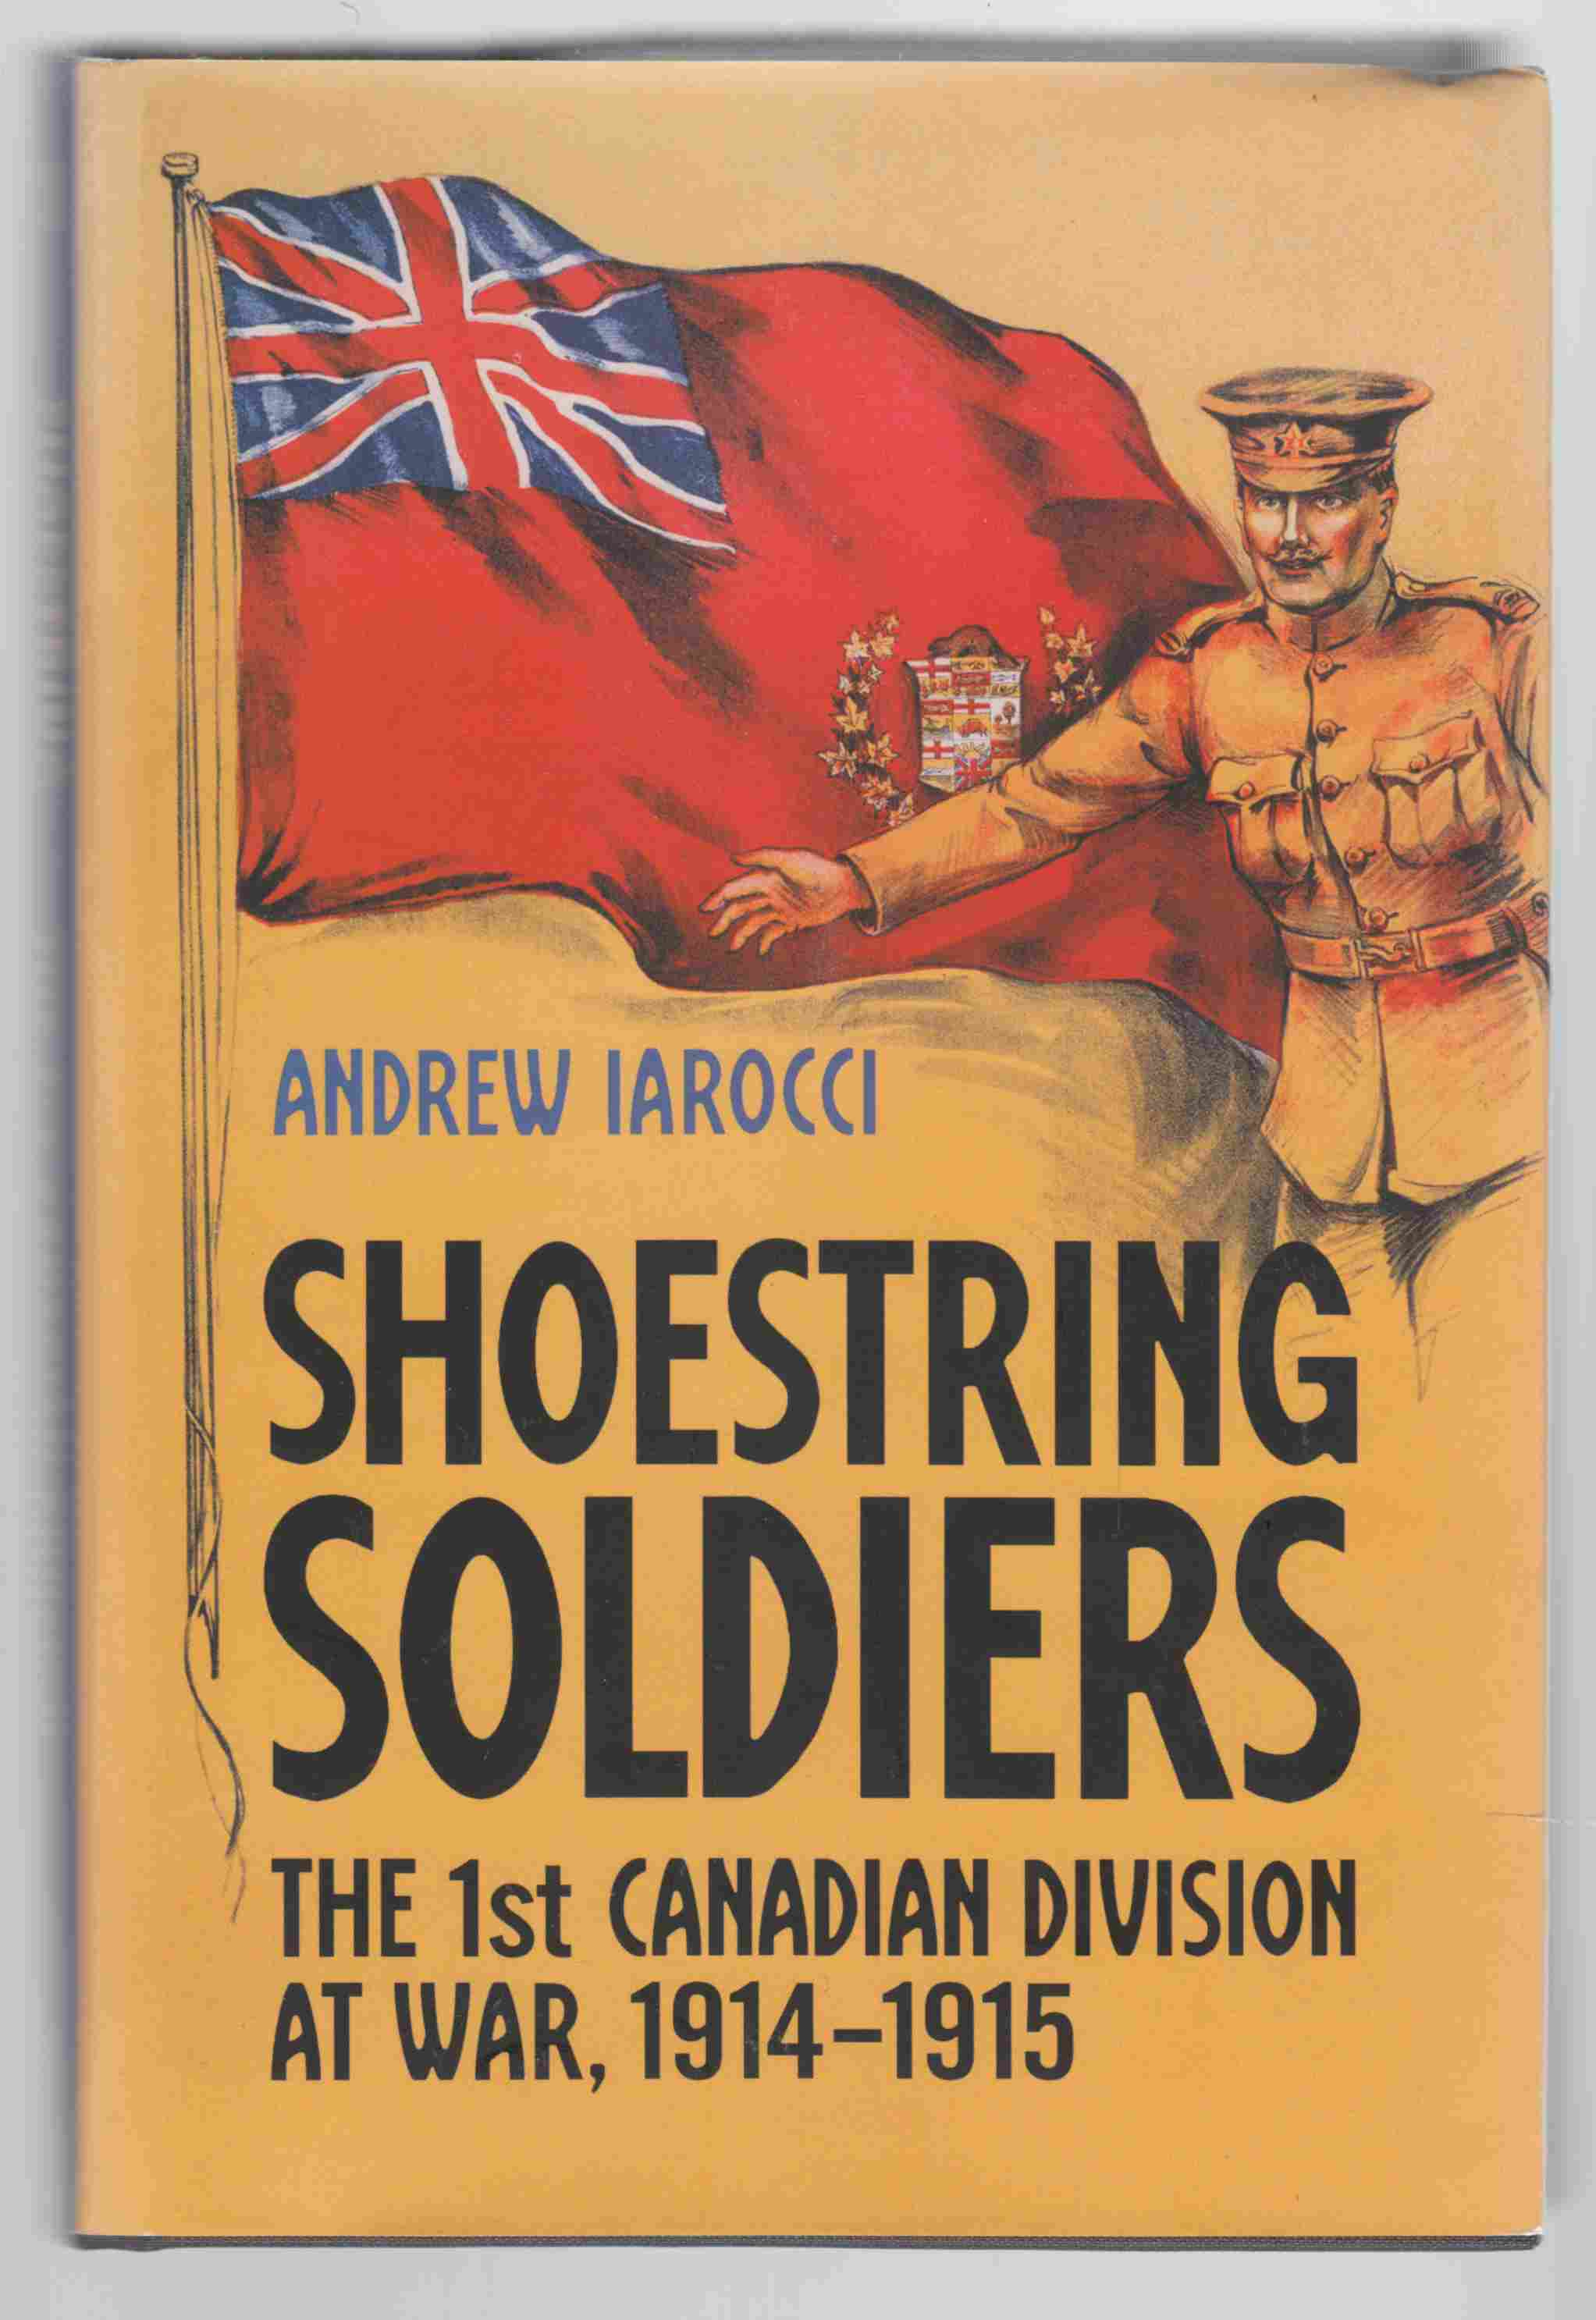 Image for Shoestring Soldiers The 1st Canadian Division At War, 1914-1915